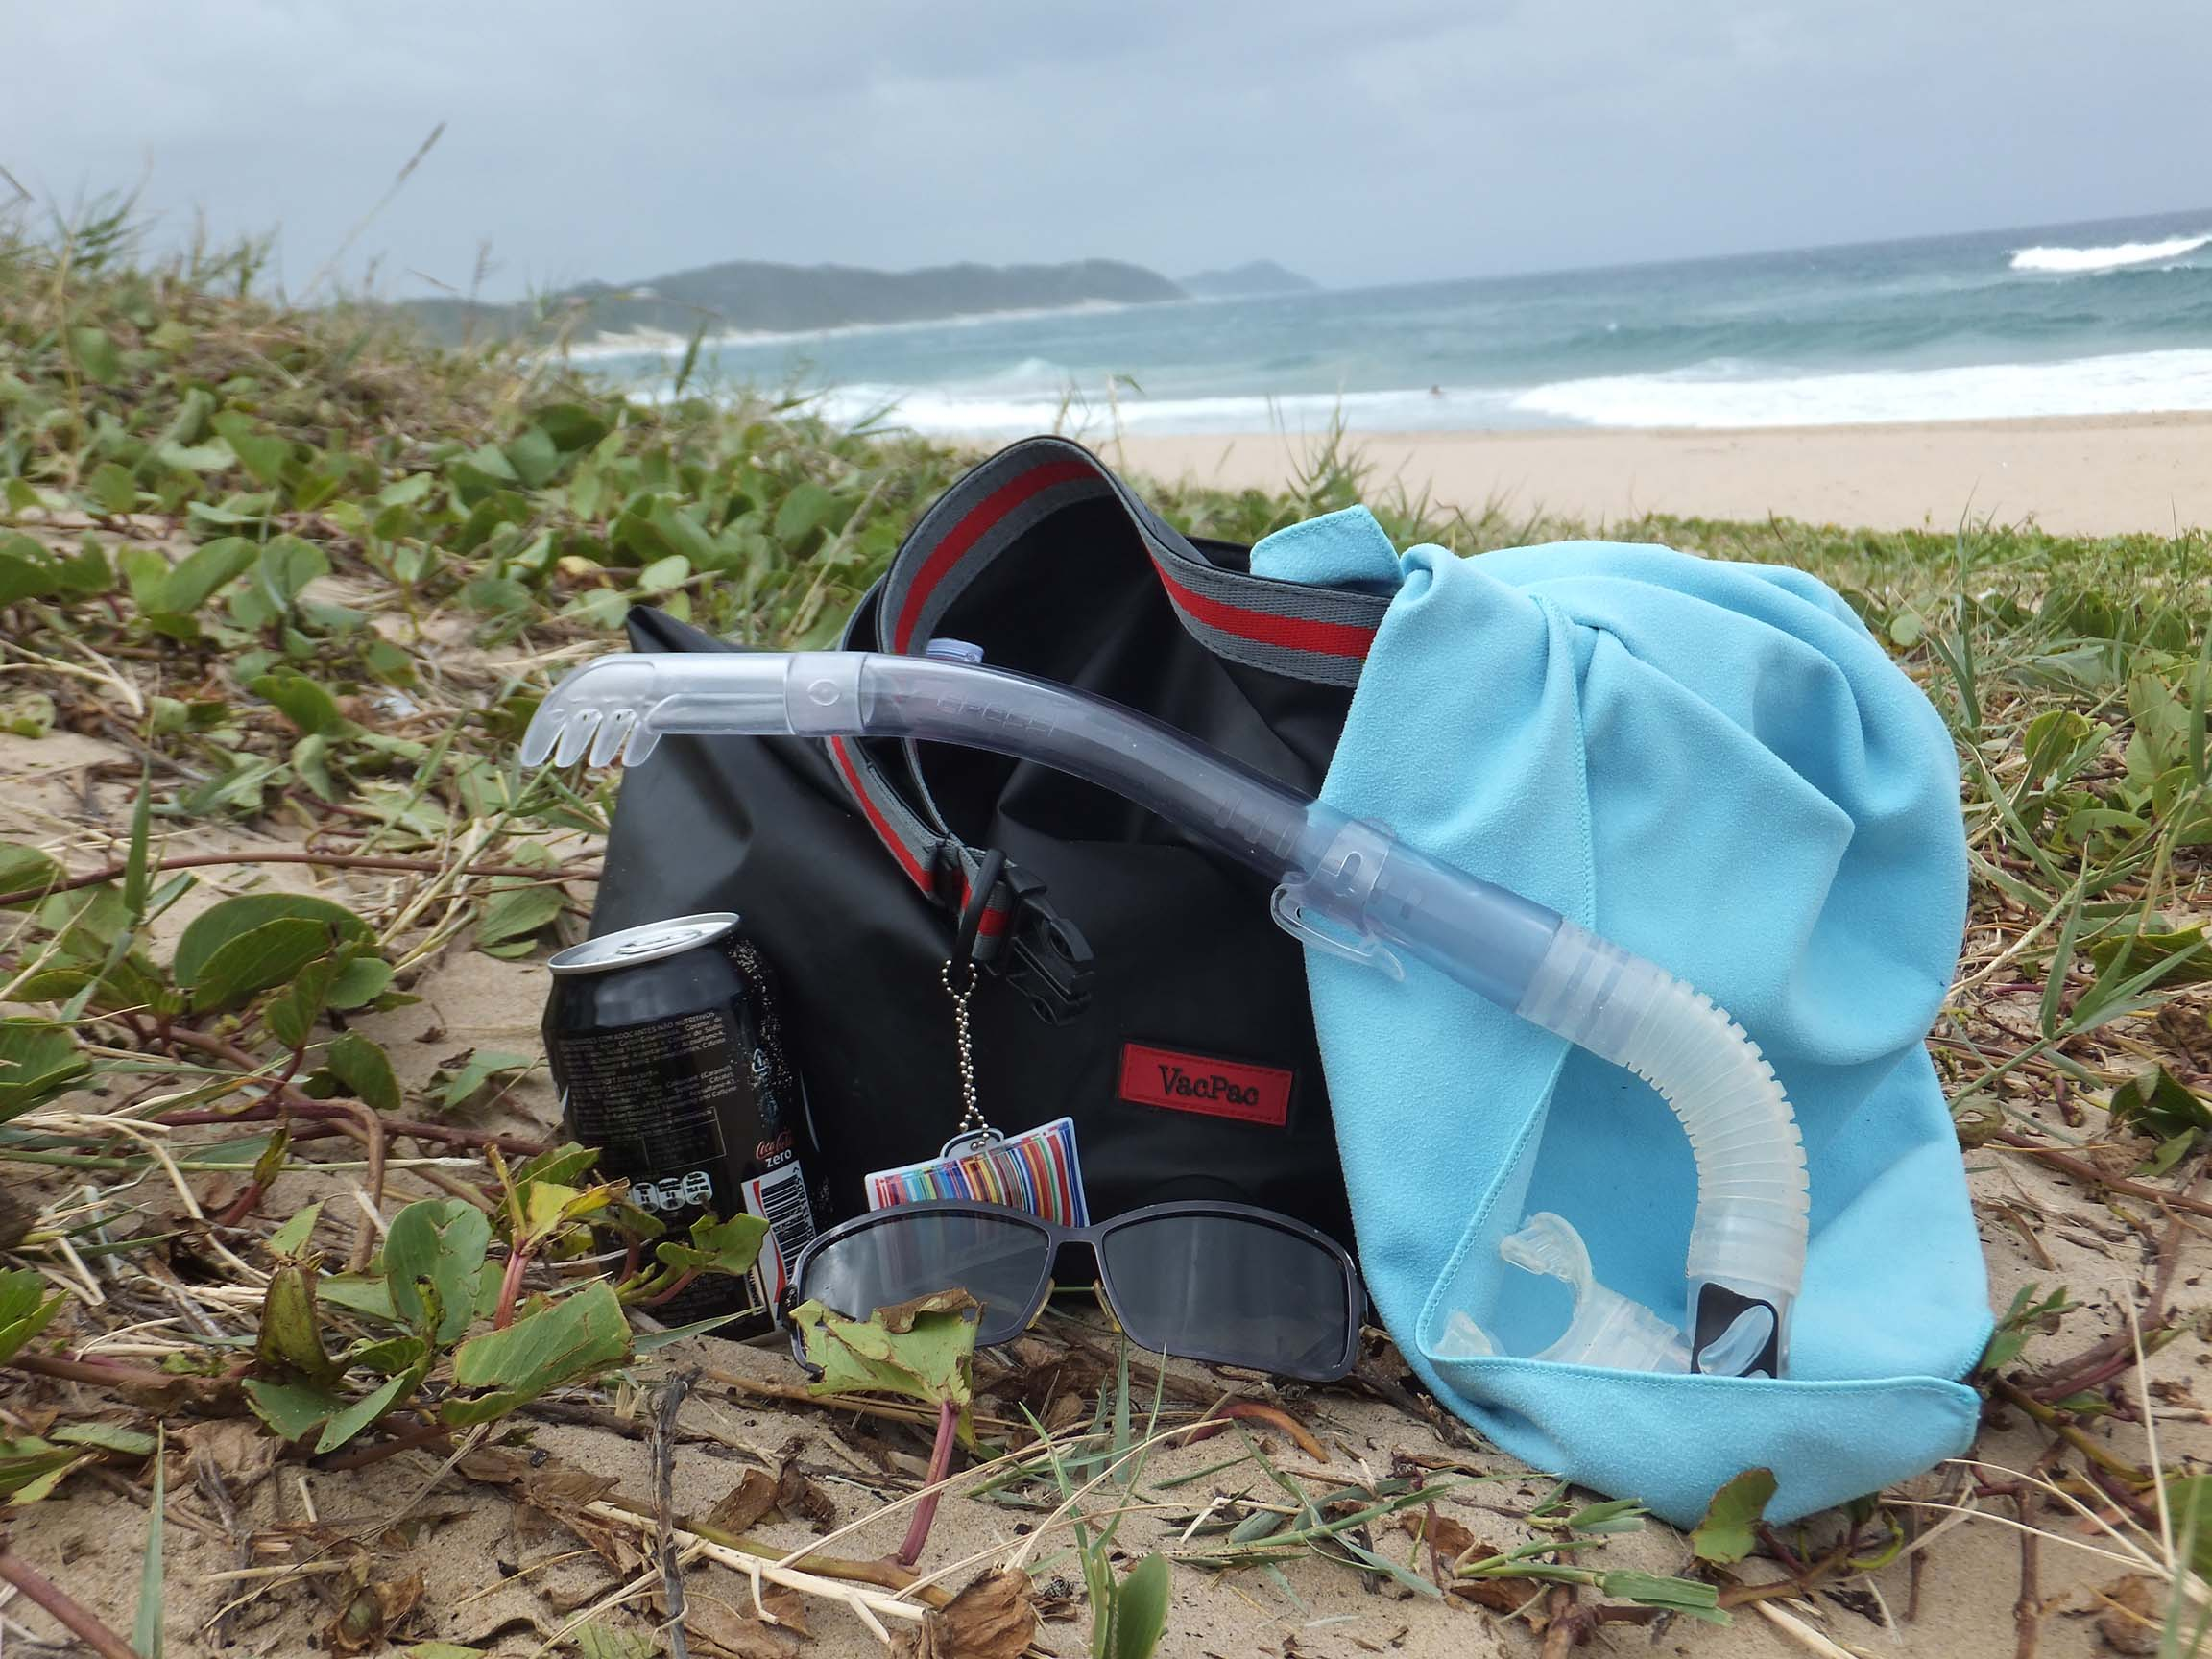 Going on a beach or pool holiday? Don't forget to bring the VacPac with you to keep your essentials dry! Shop now! Www.leanpac.co.uk/vacpac